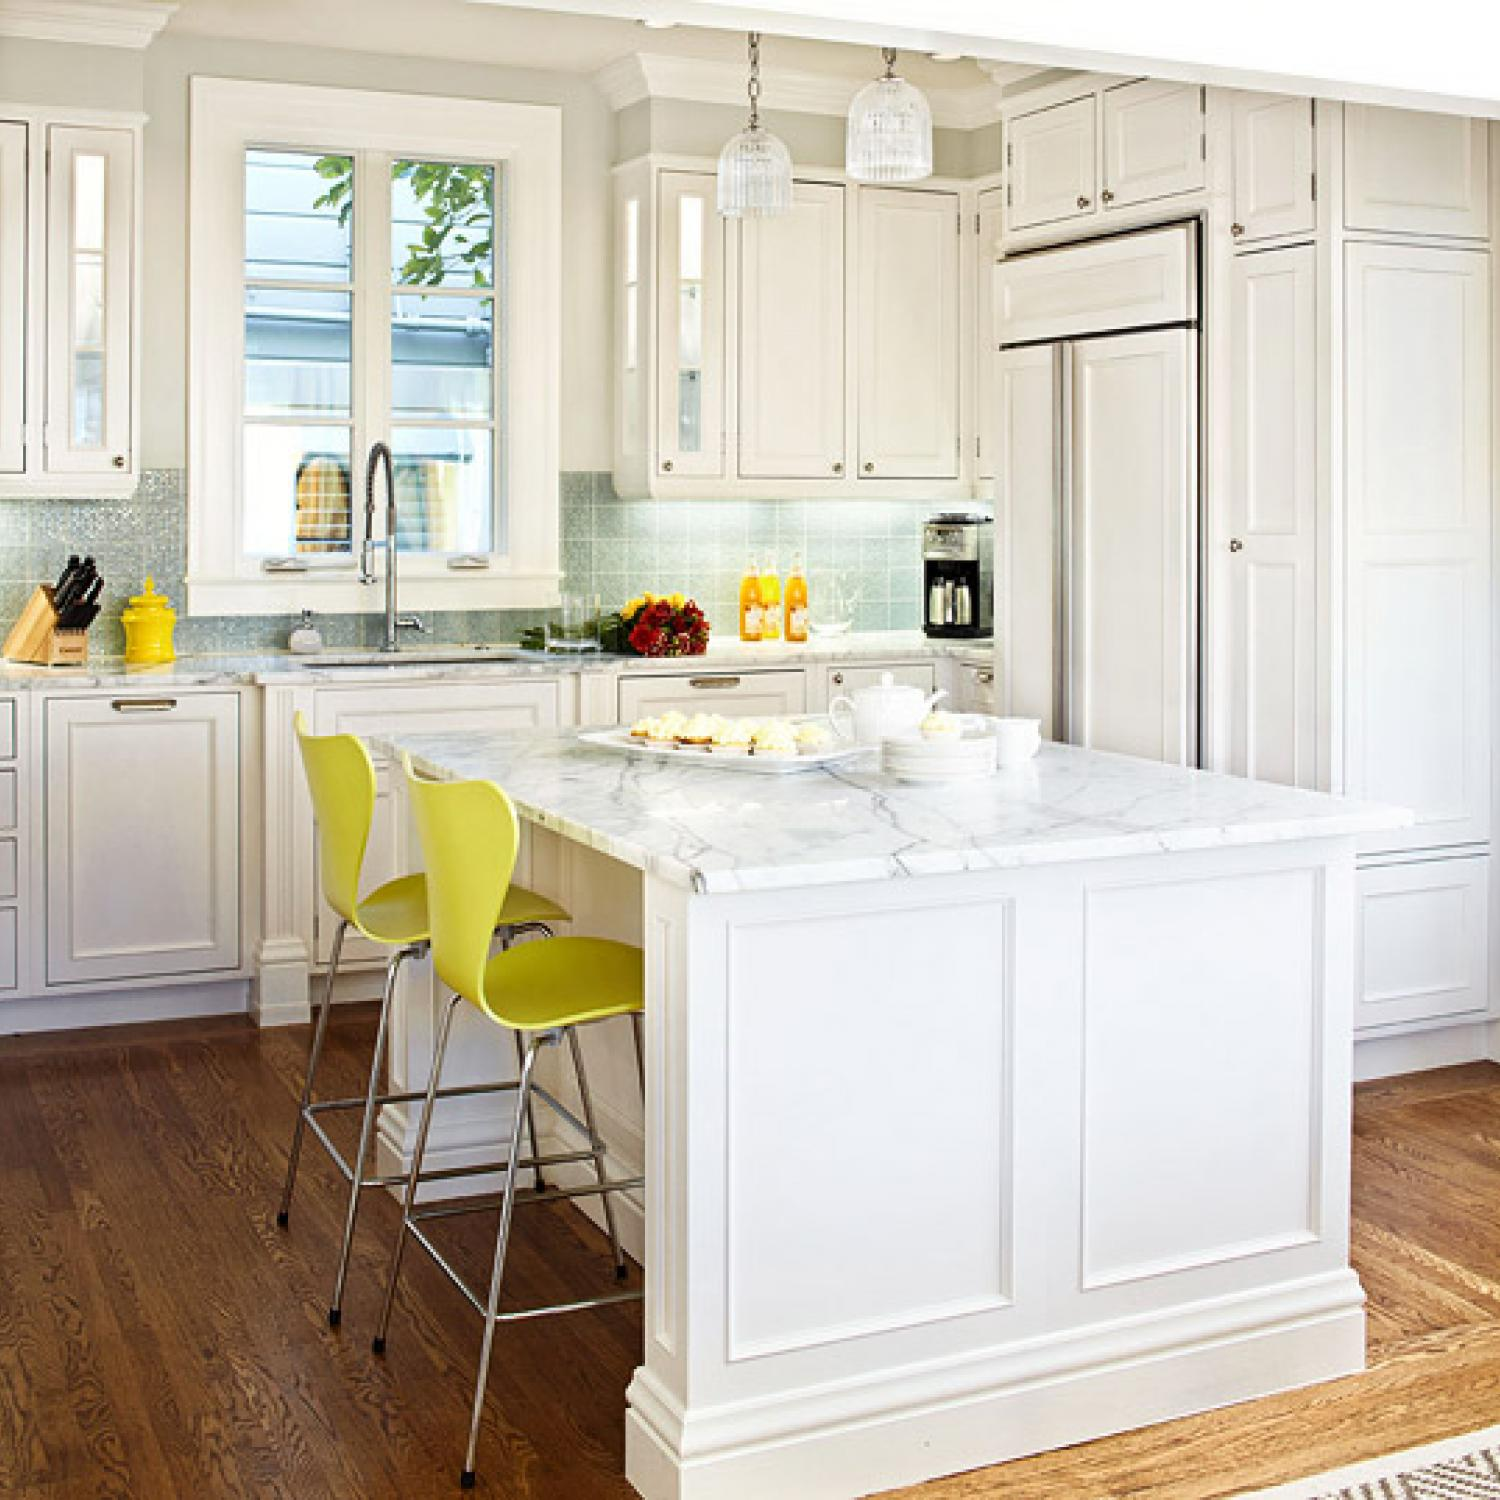 Design ideas for white kitchens traditional home for Home kitchen design ideas